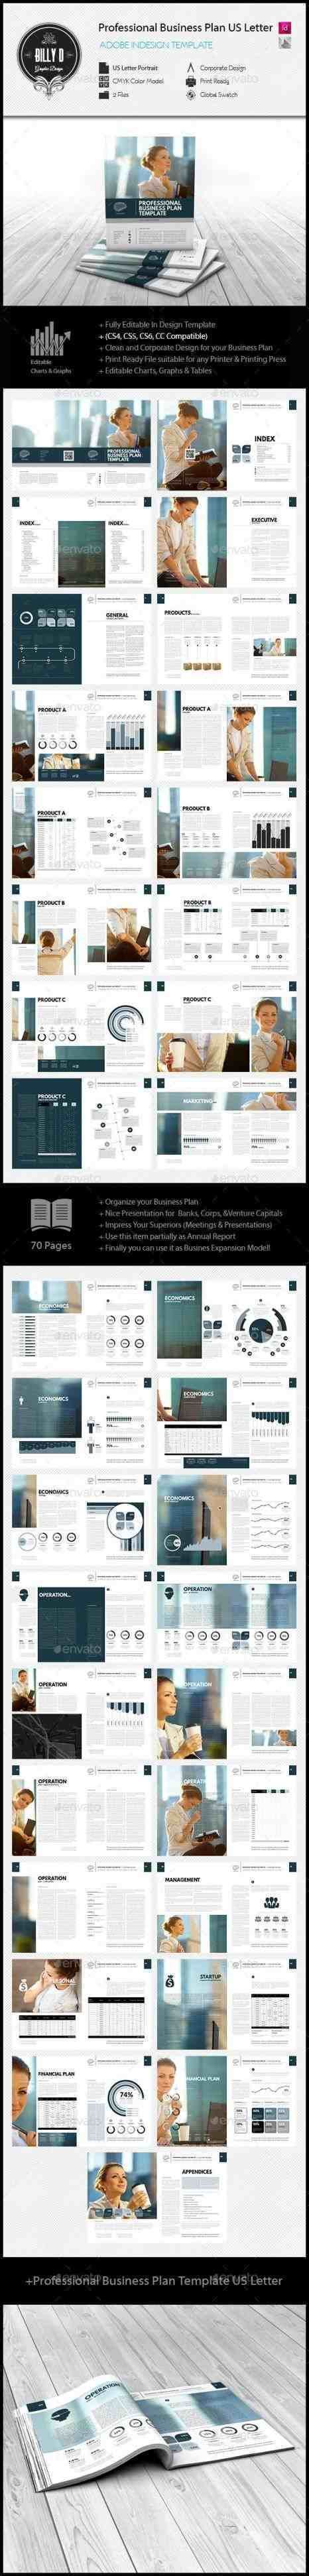 Self storage business plan template free tamplate pinterest self storage business plan template cheaphphosting